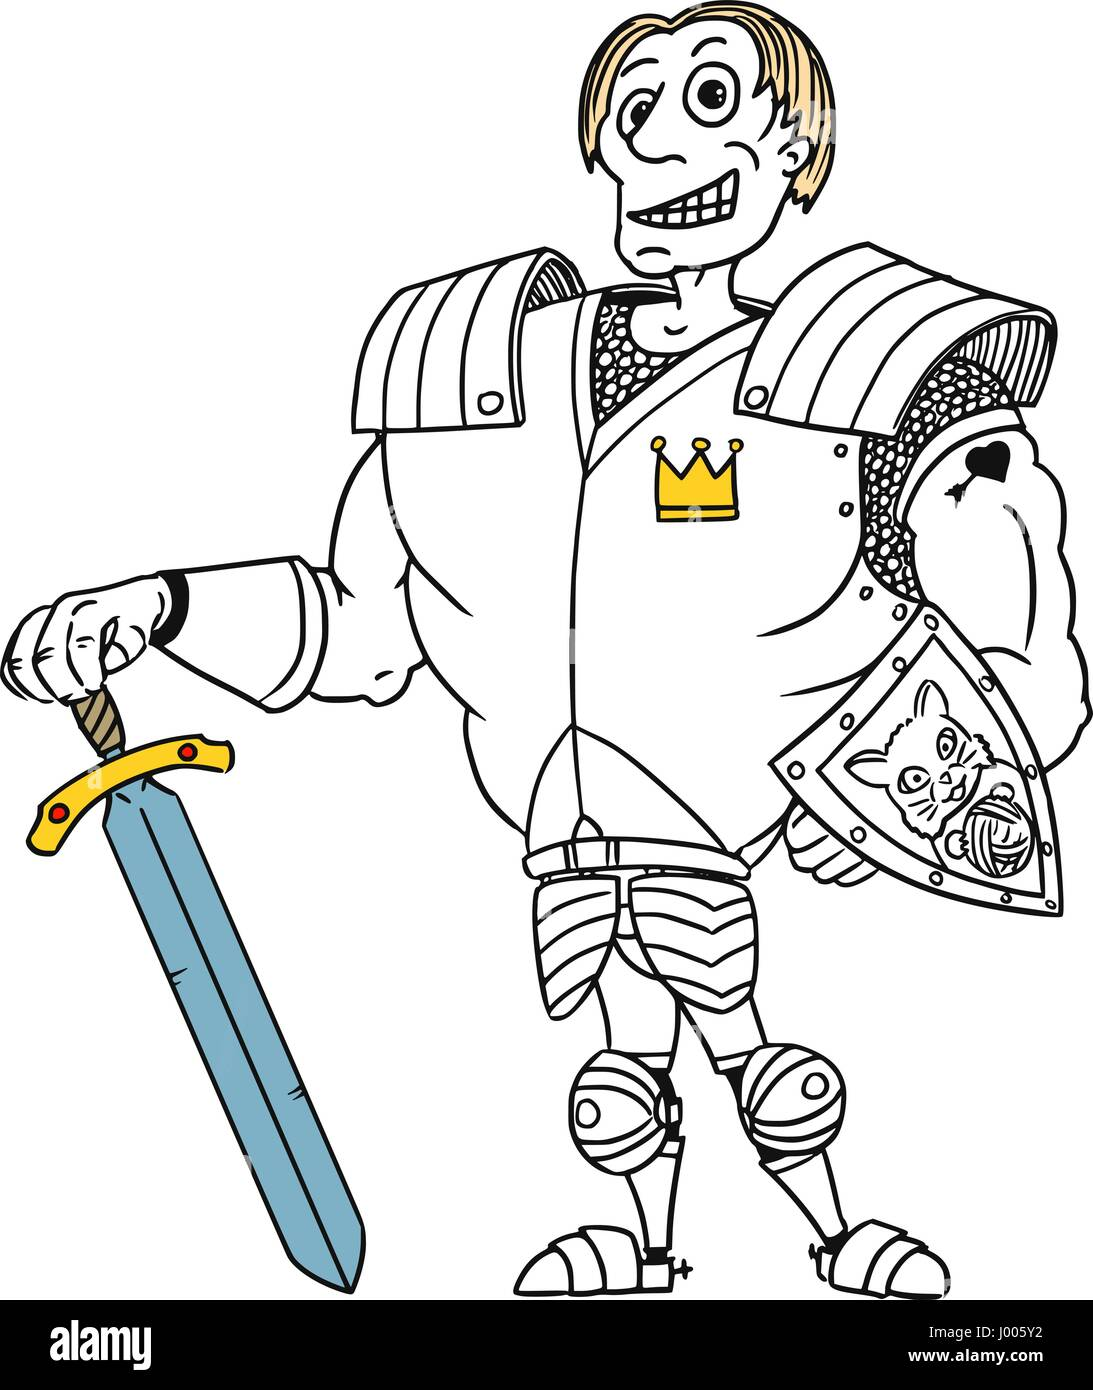 Cartoon vector old fantasy medieval royal Prince Charming knight hero with armor, sword, shield and smile - Stock Vector